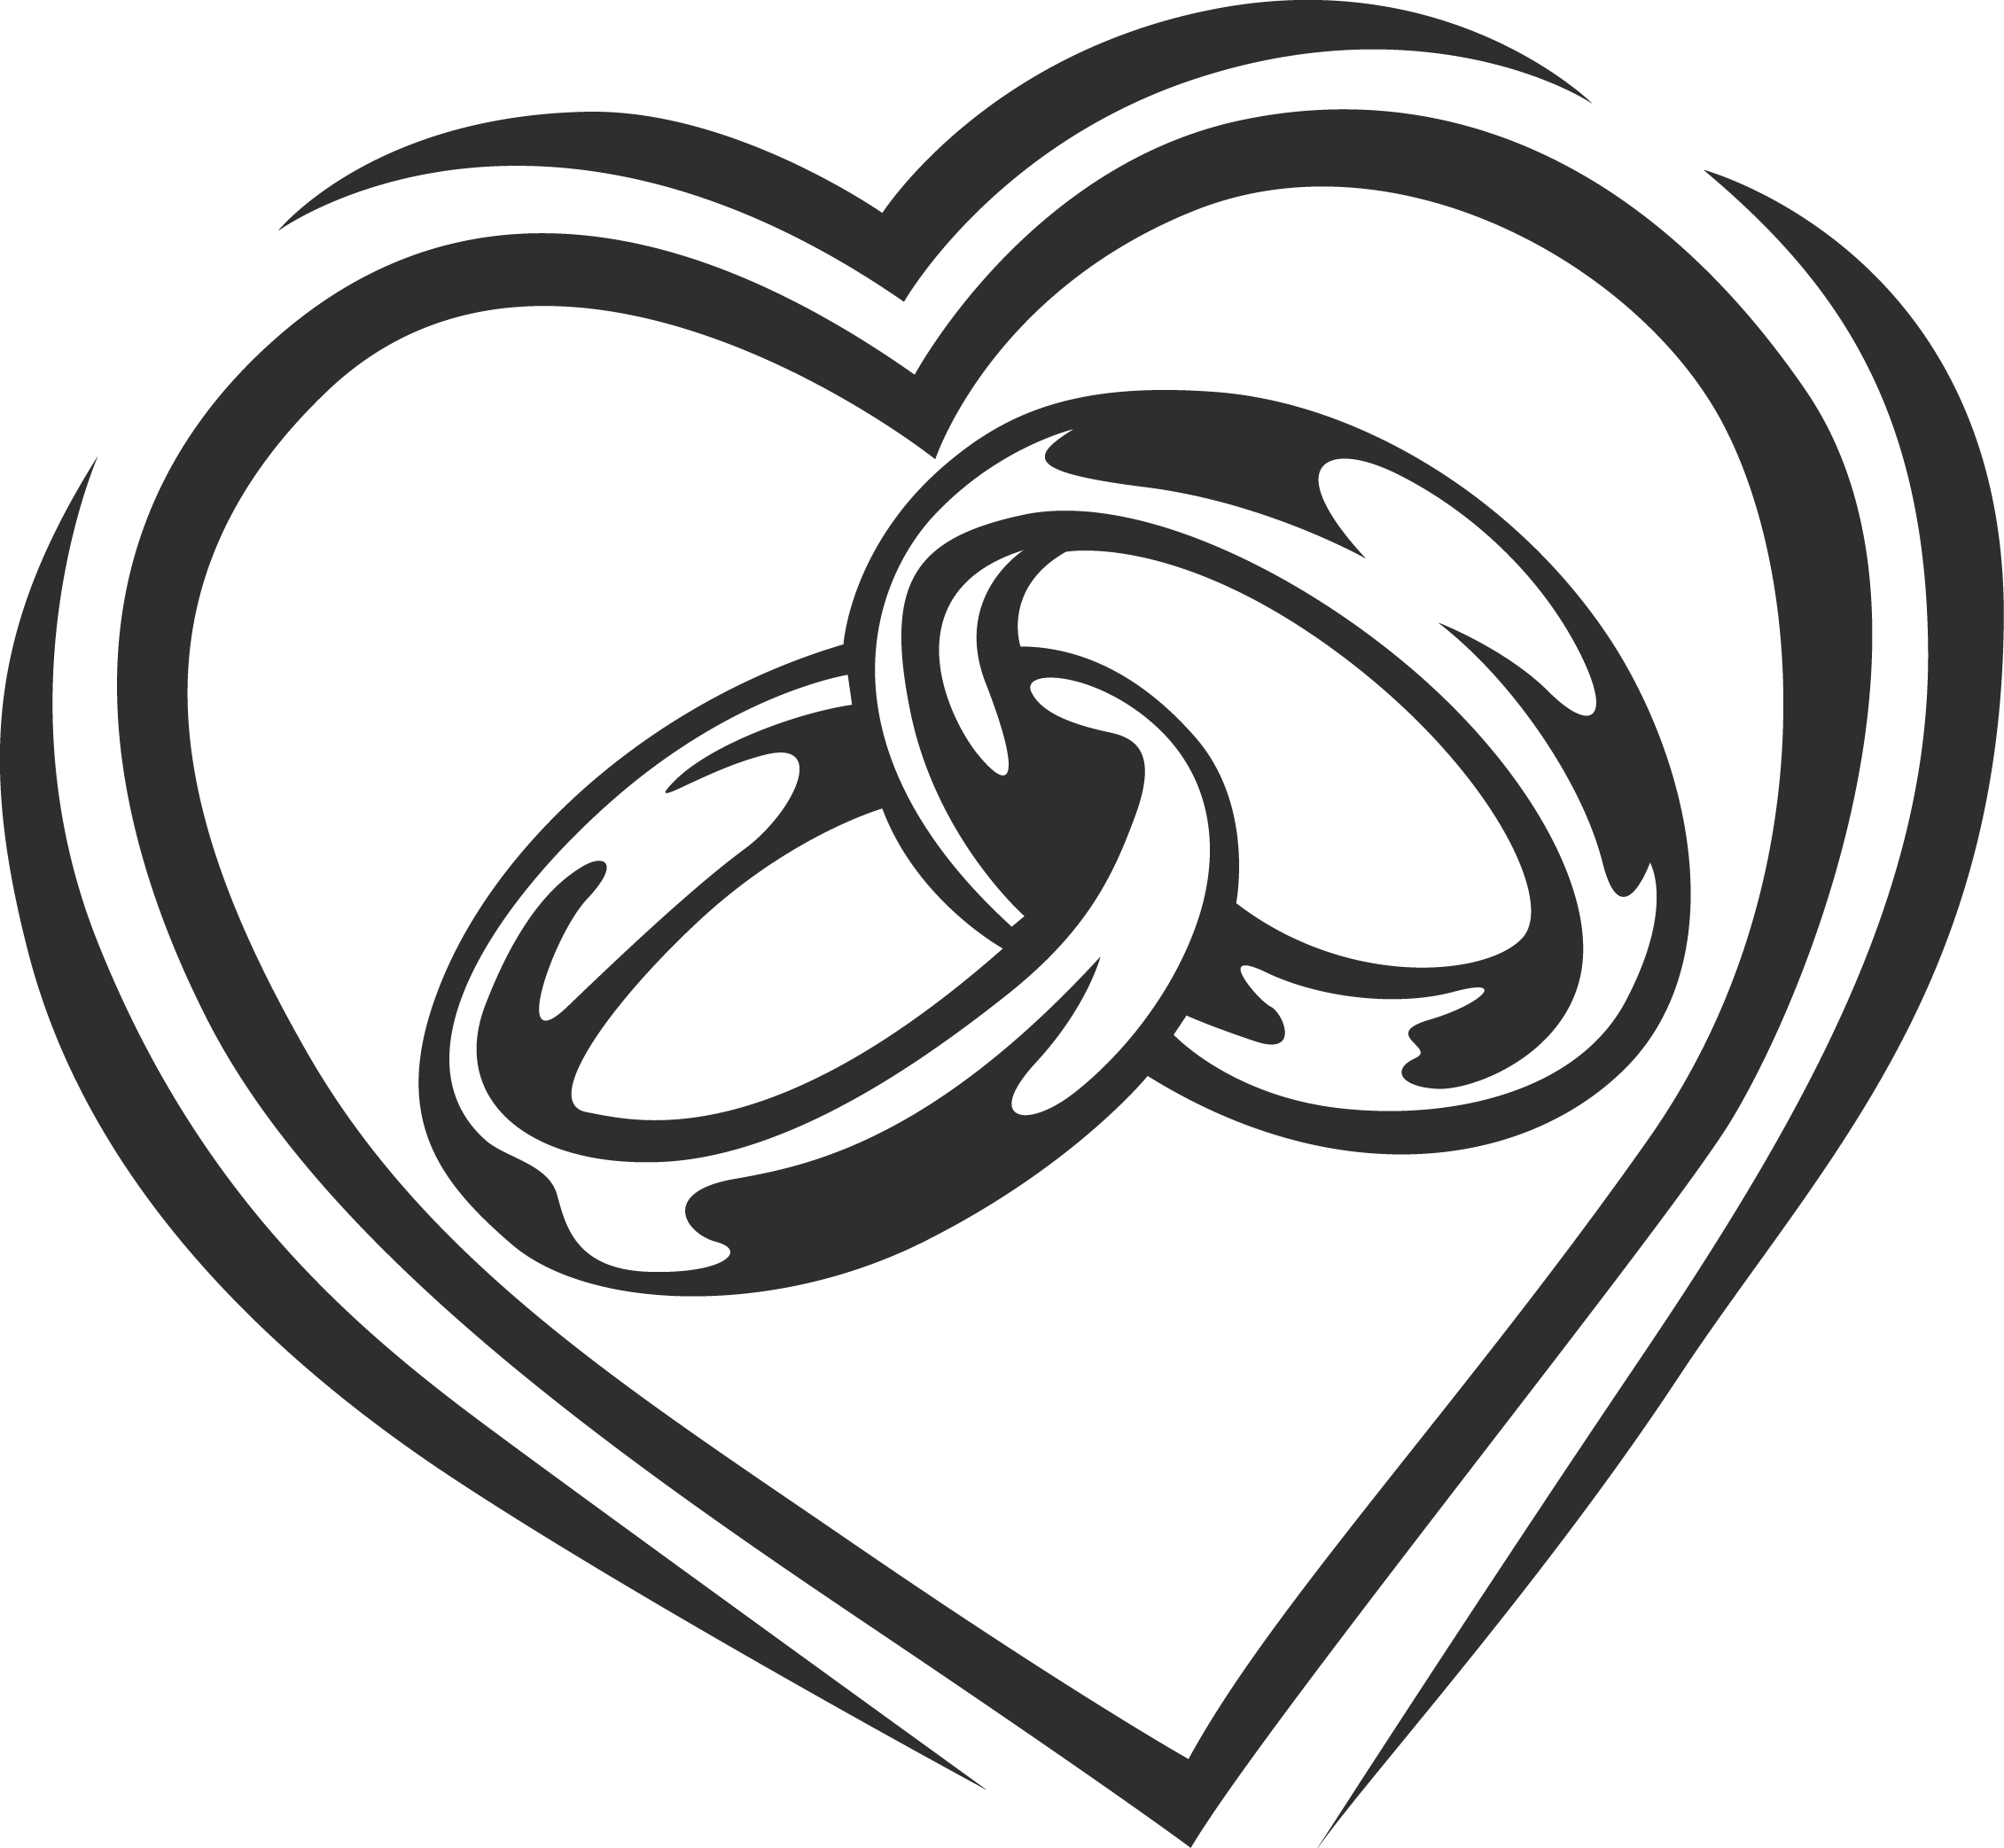 Interlocking wedding rings clipart clipart images gallery for free.